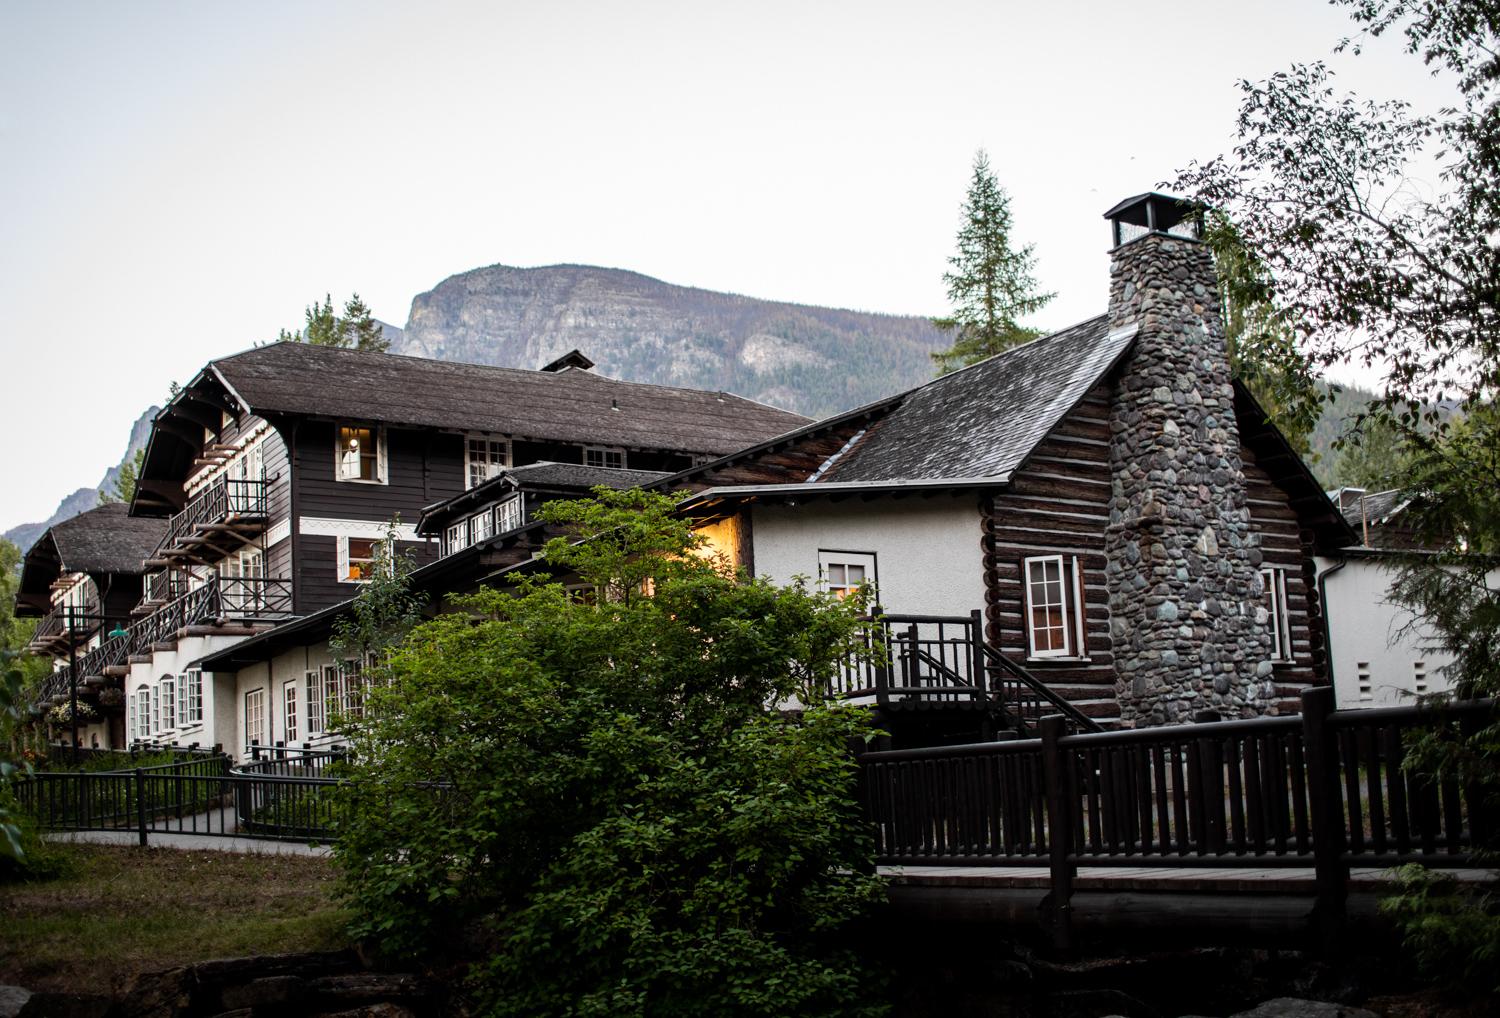 Home for the night: Lake McDonald Lodge.